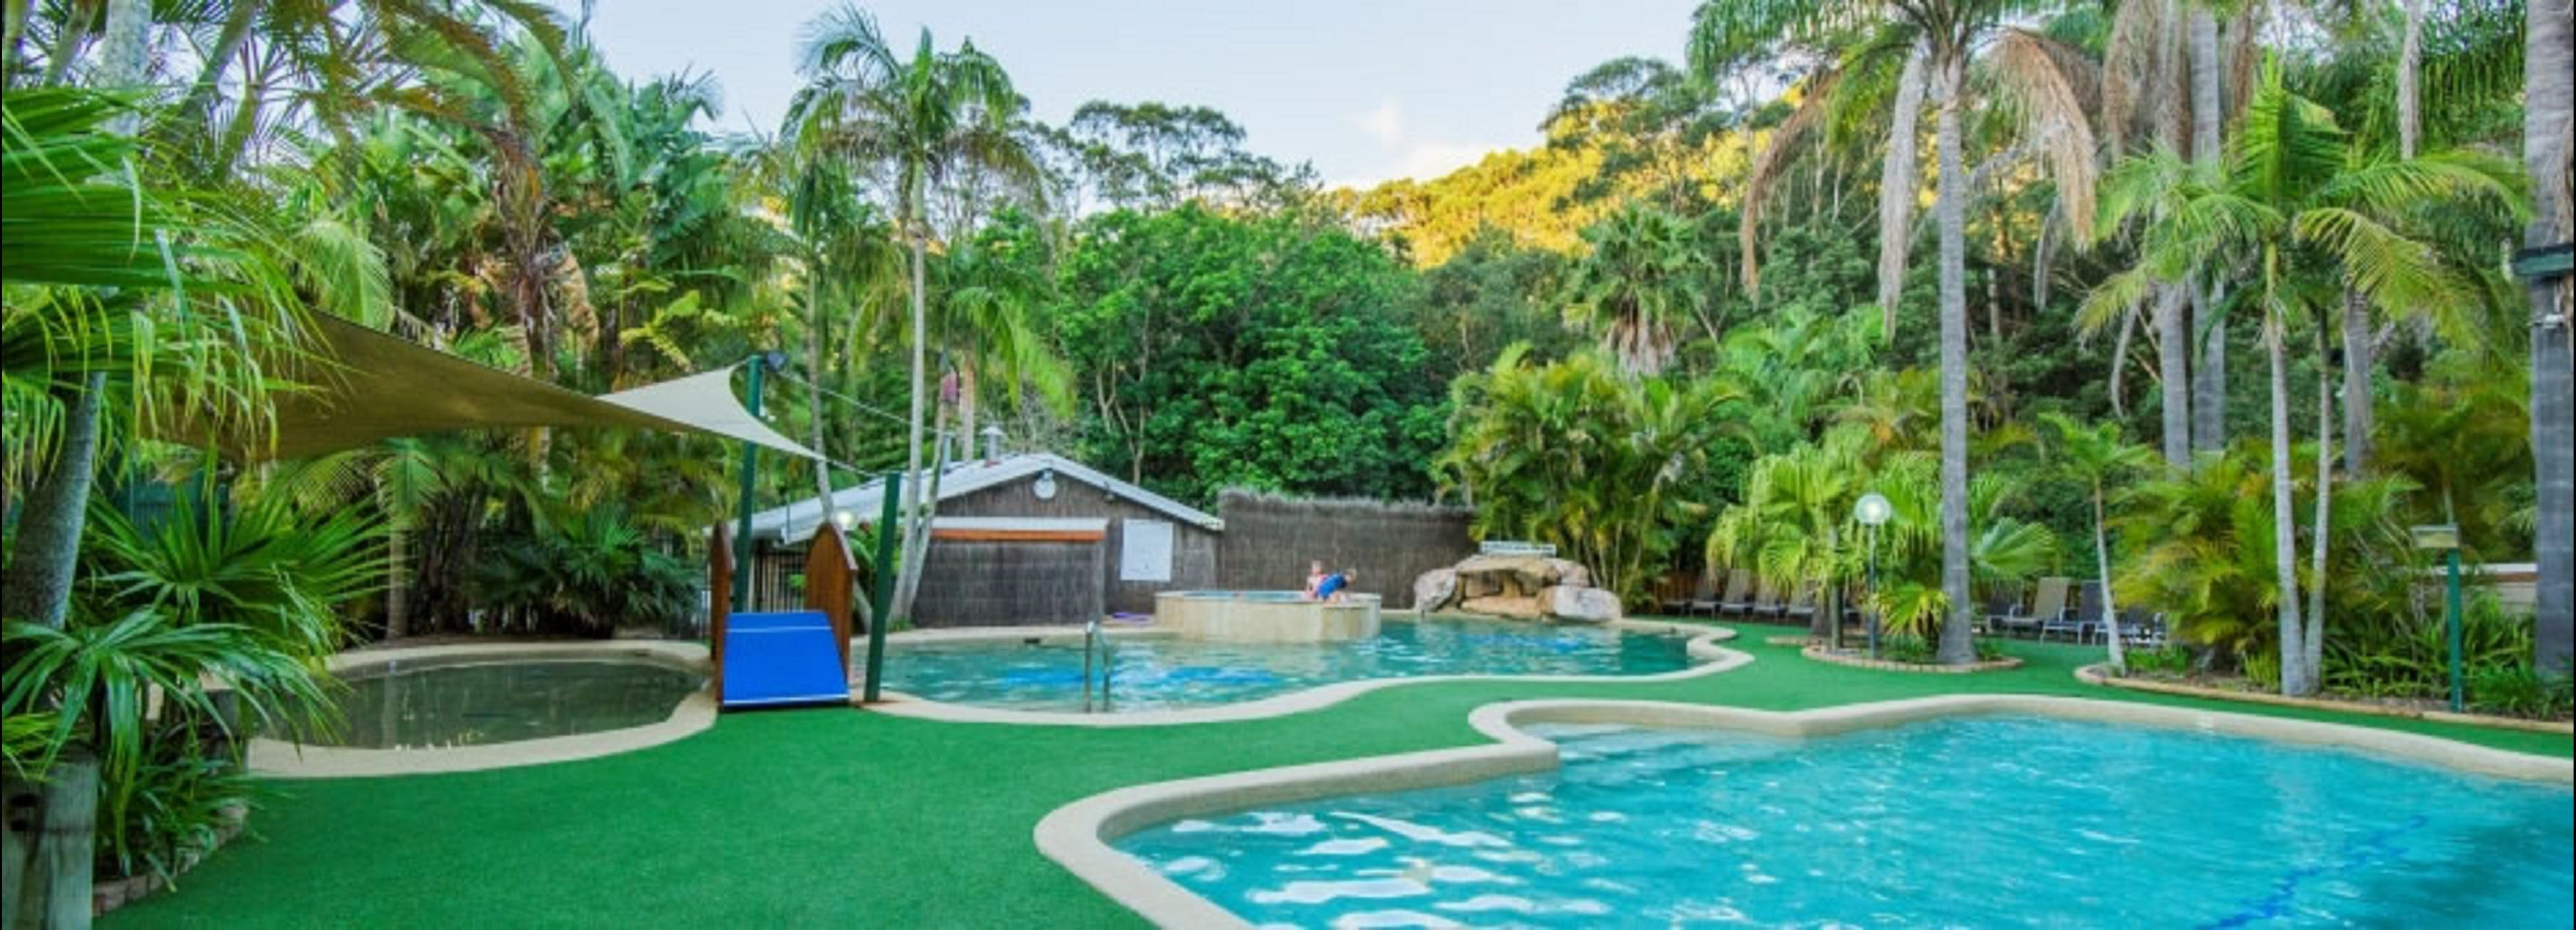 The Palms at Avoca - Accommodation Airlie Beach